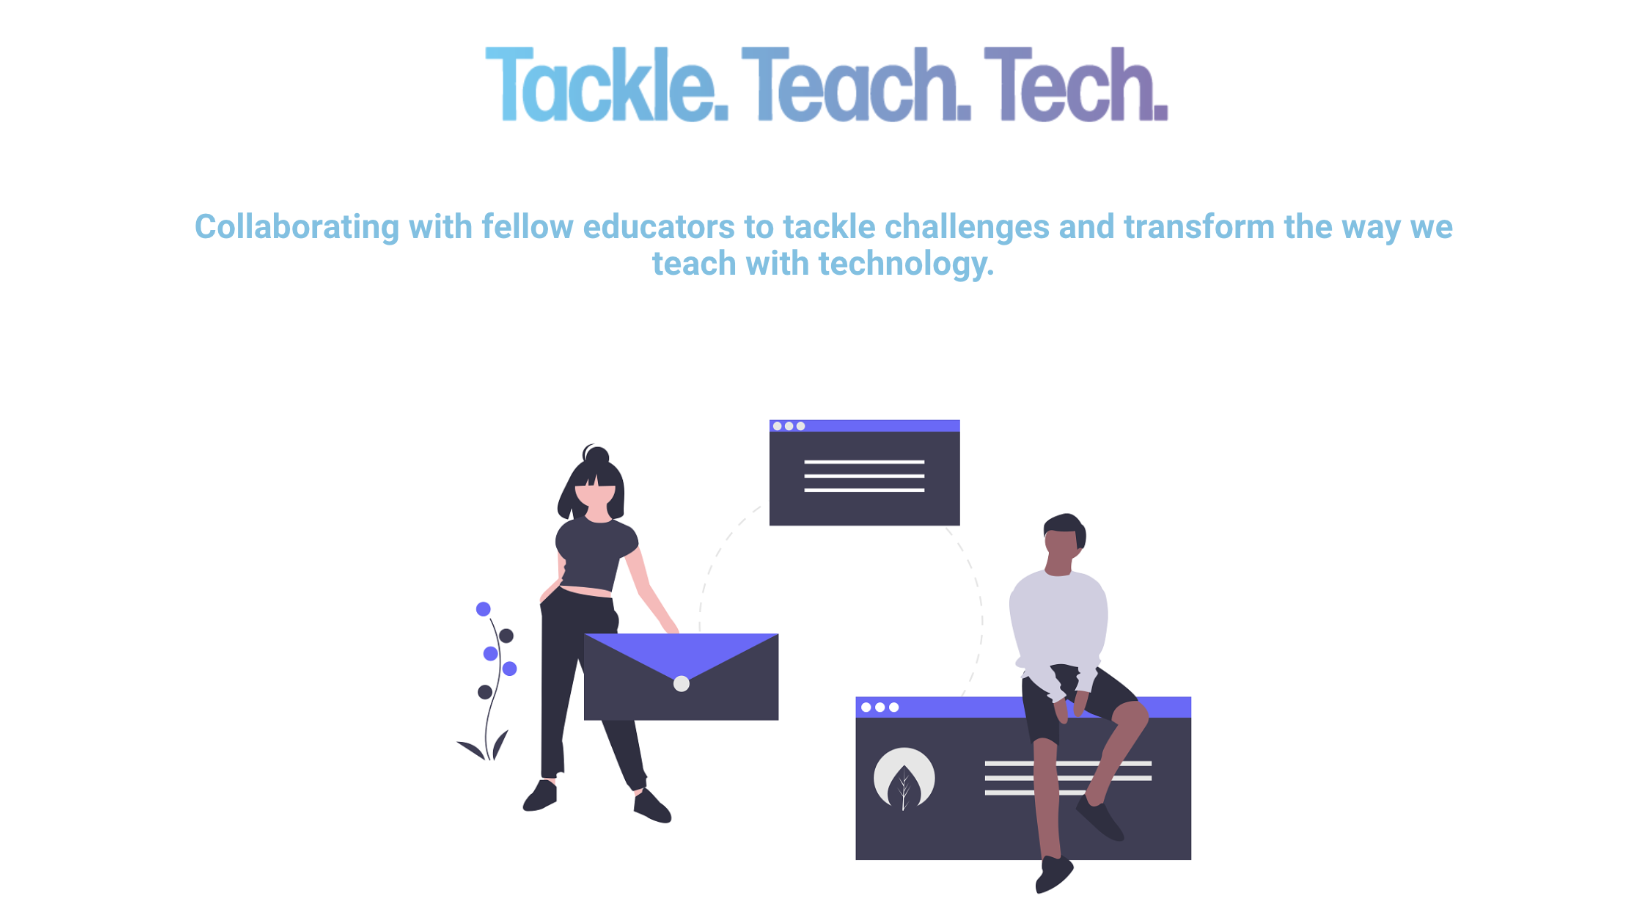 Tackle. Teach. Tech